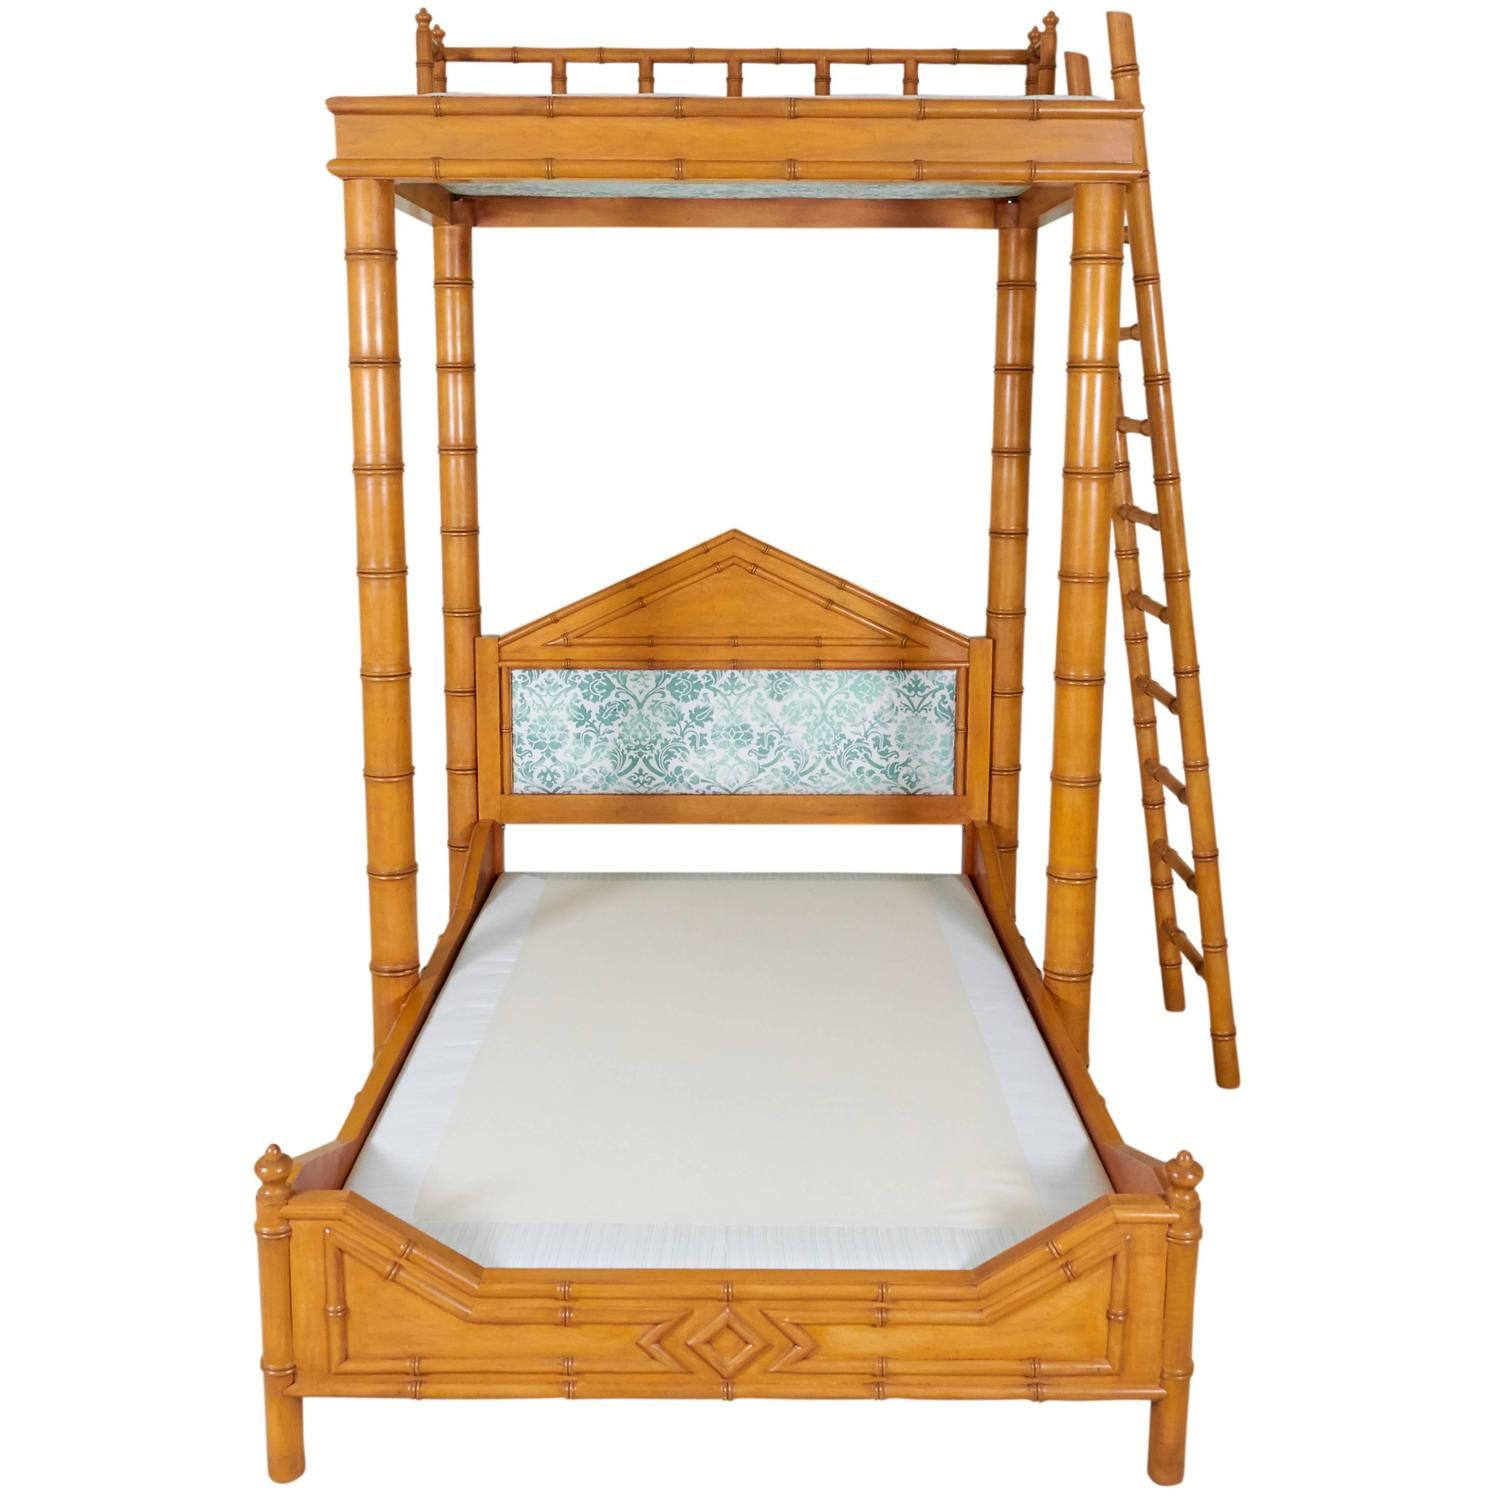 Faux Bamboo Bed with Platform Canopy Faux bamboo, Modern